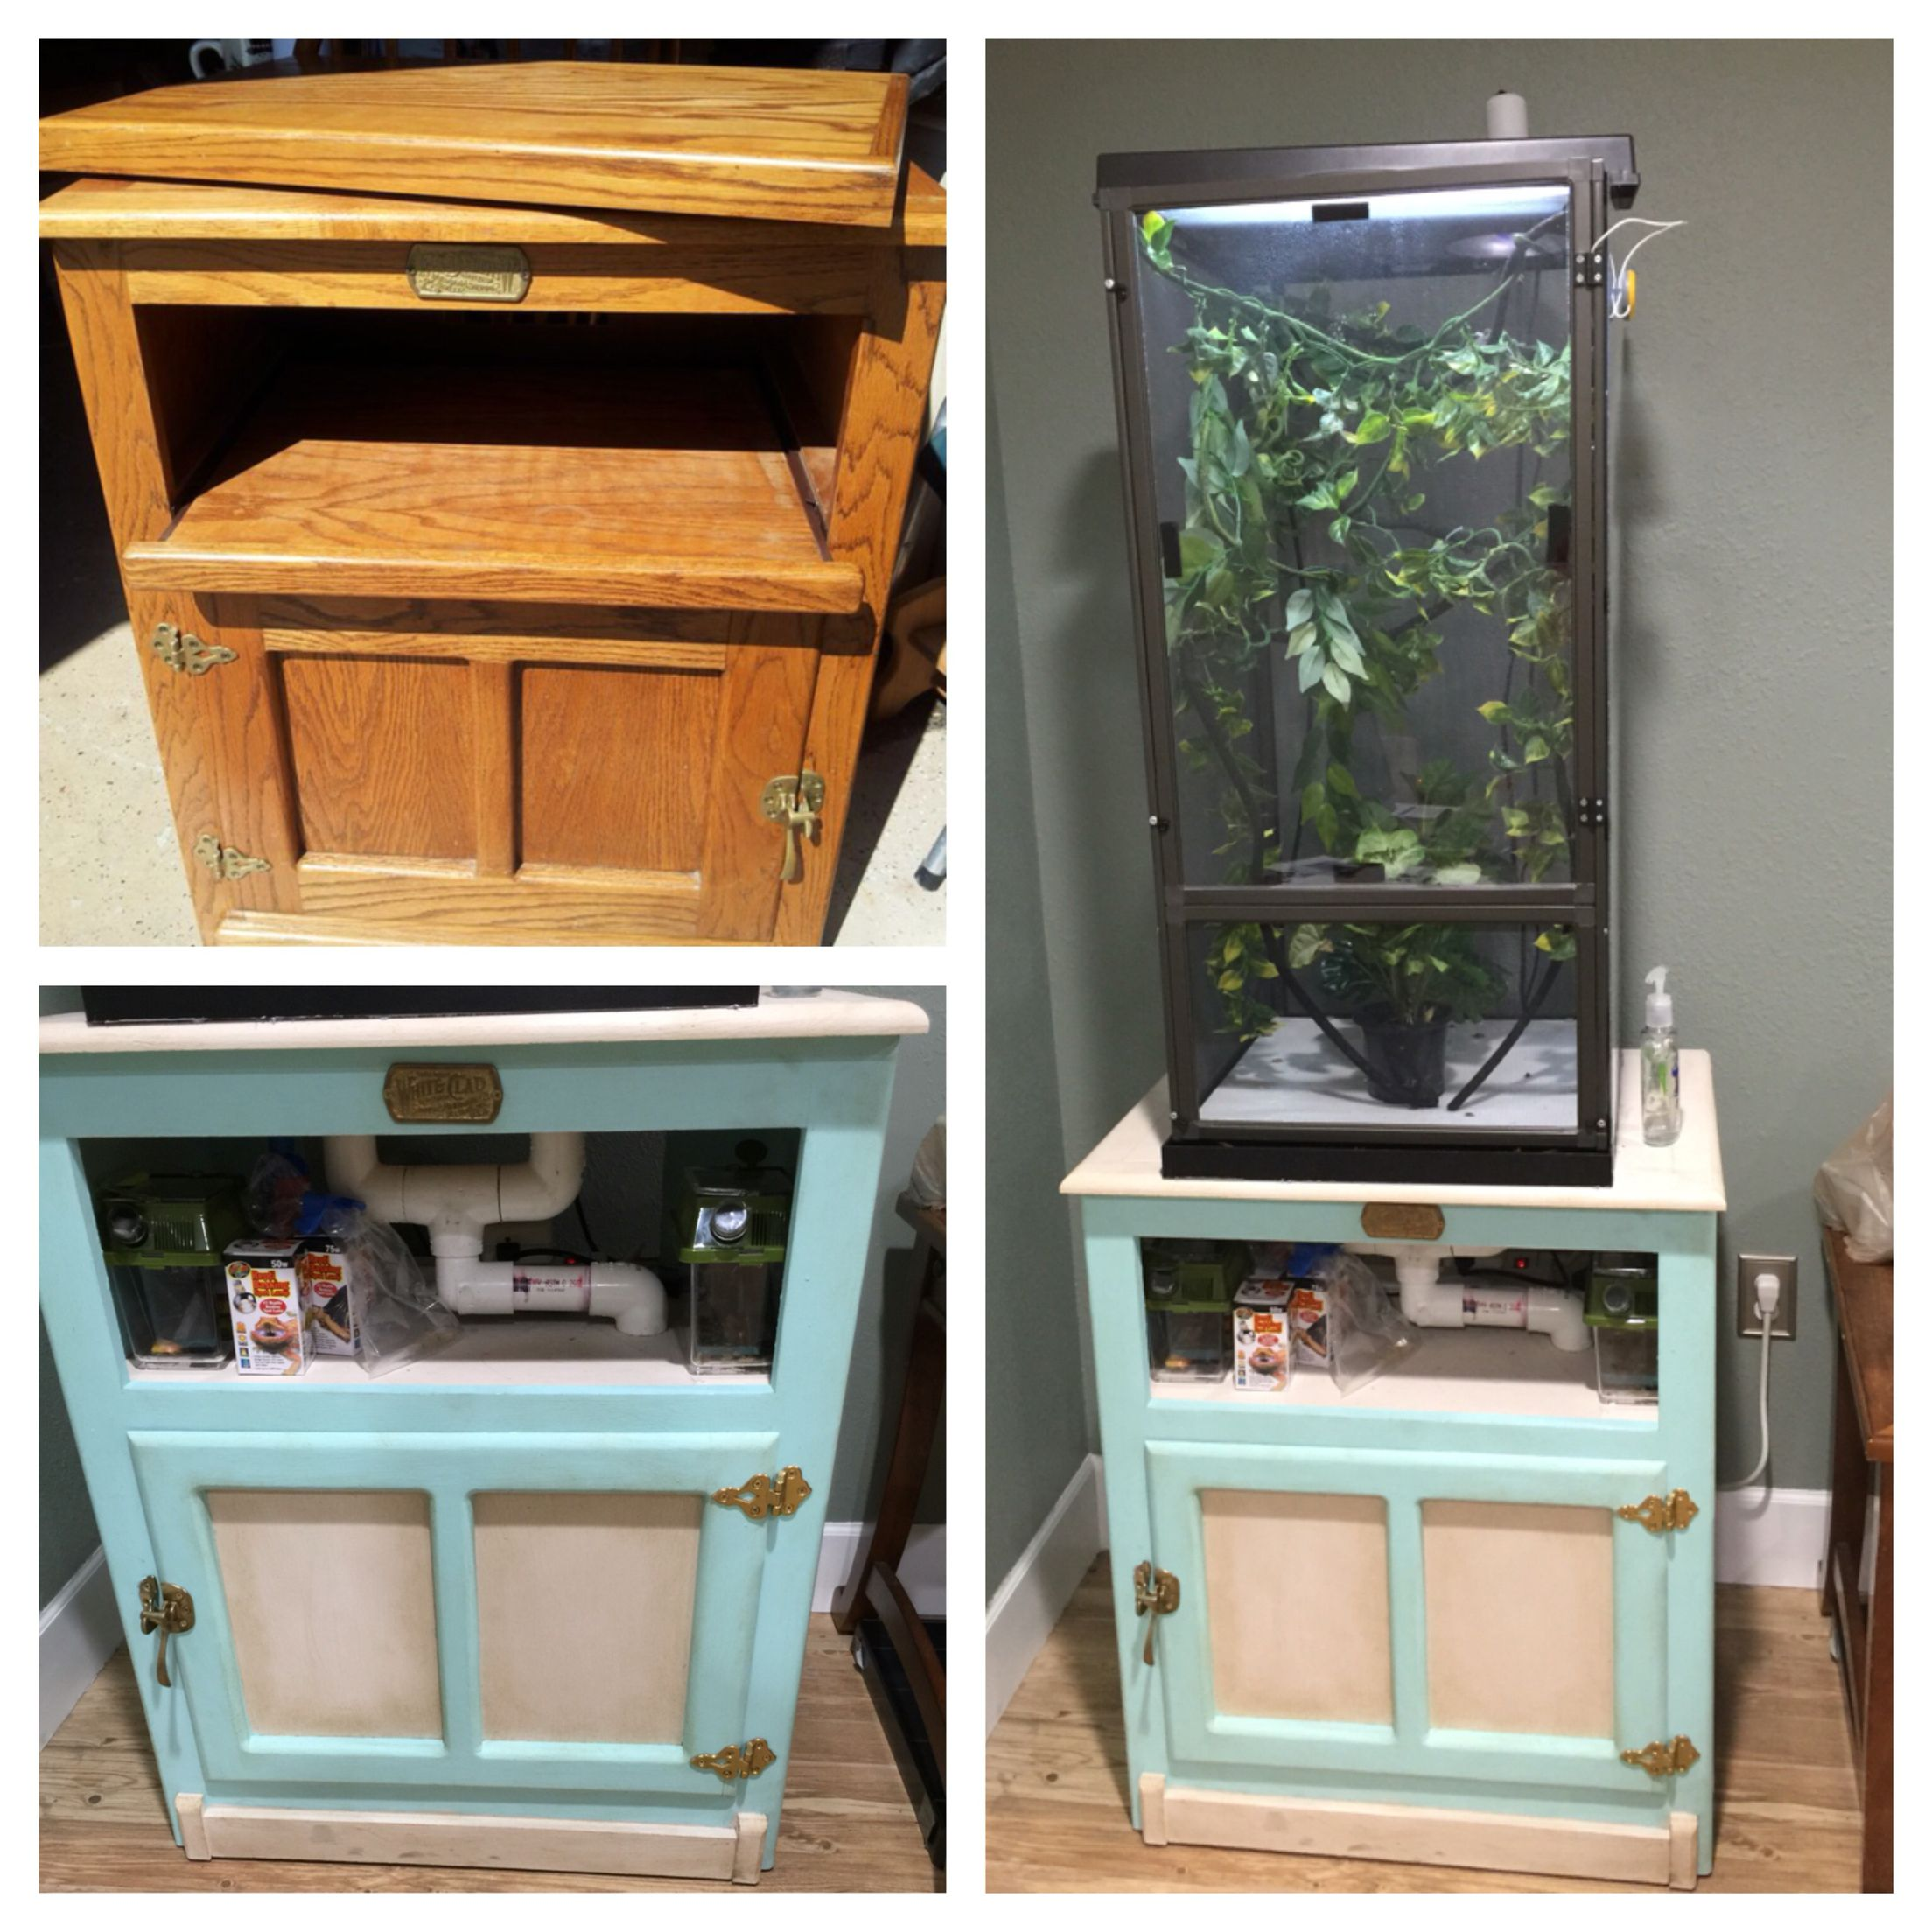 Before And After Of A Repurposed Tv Stand To A Chameleon Cage With